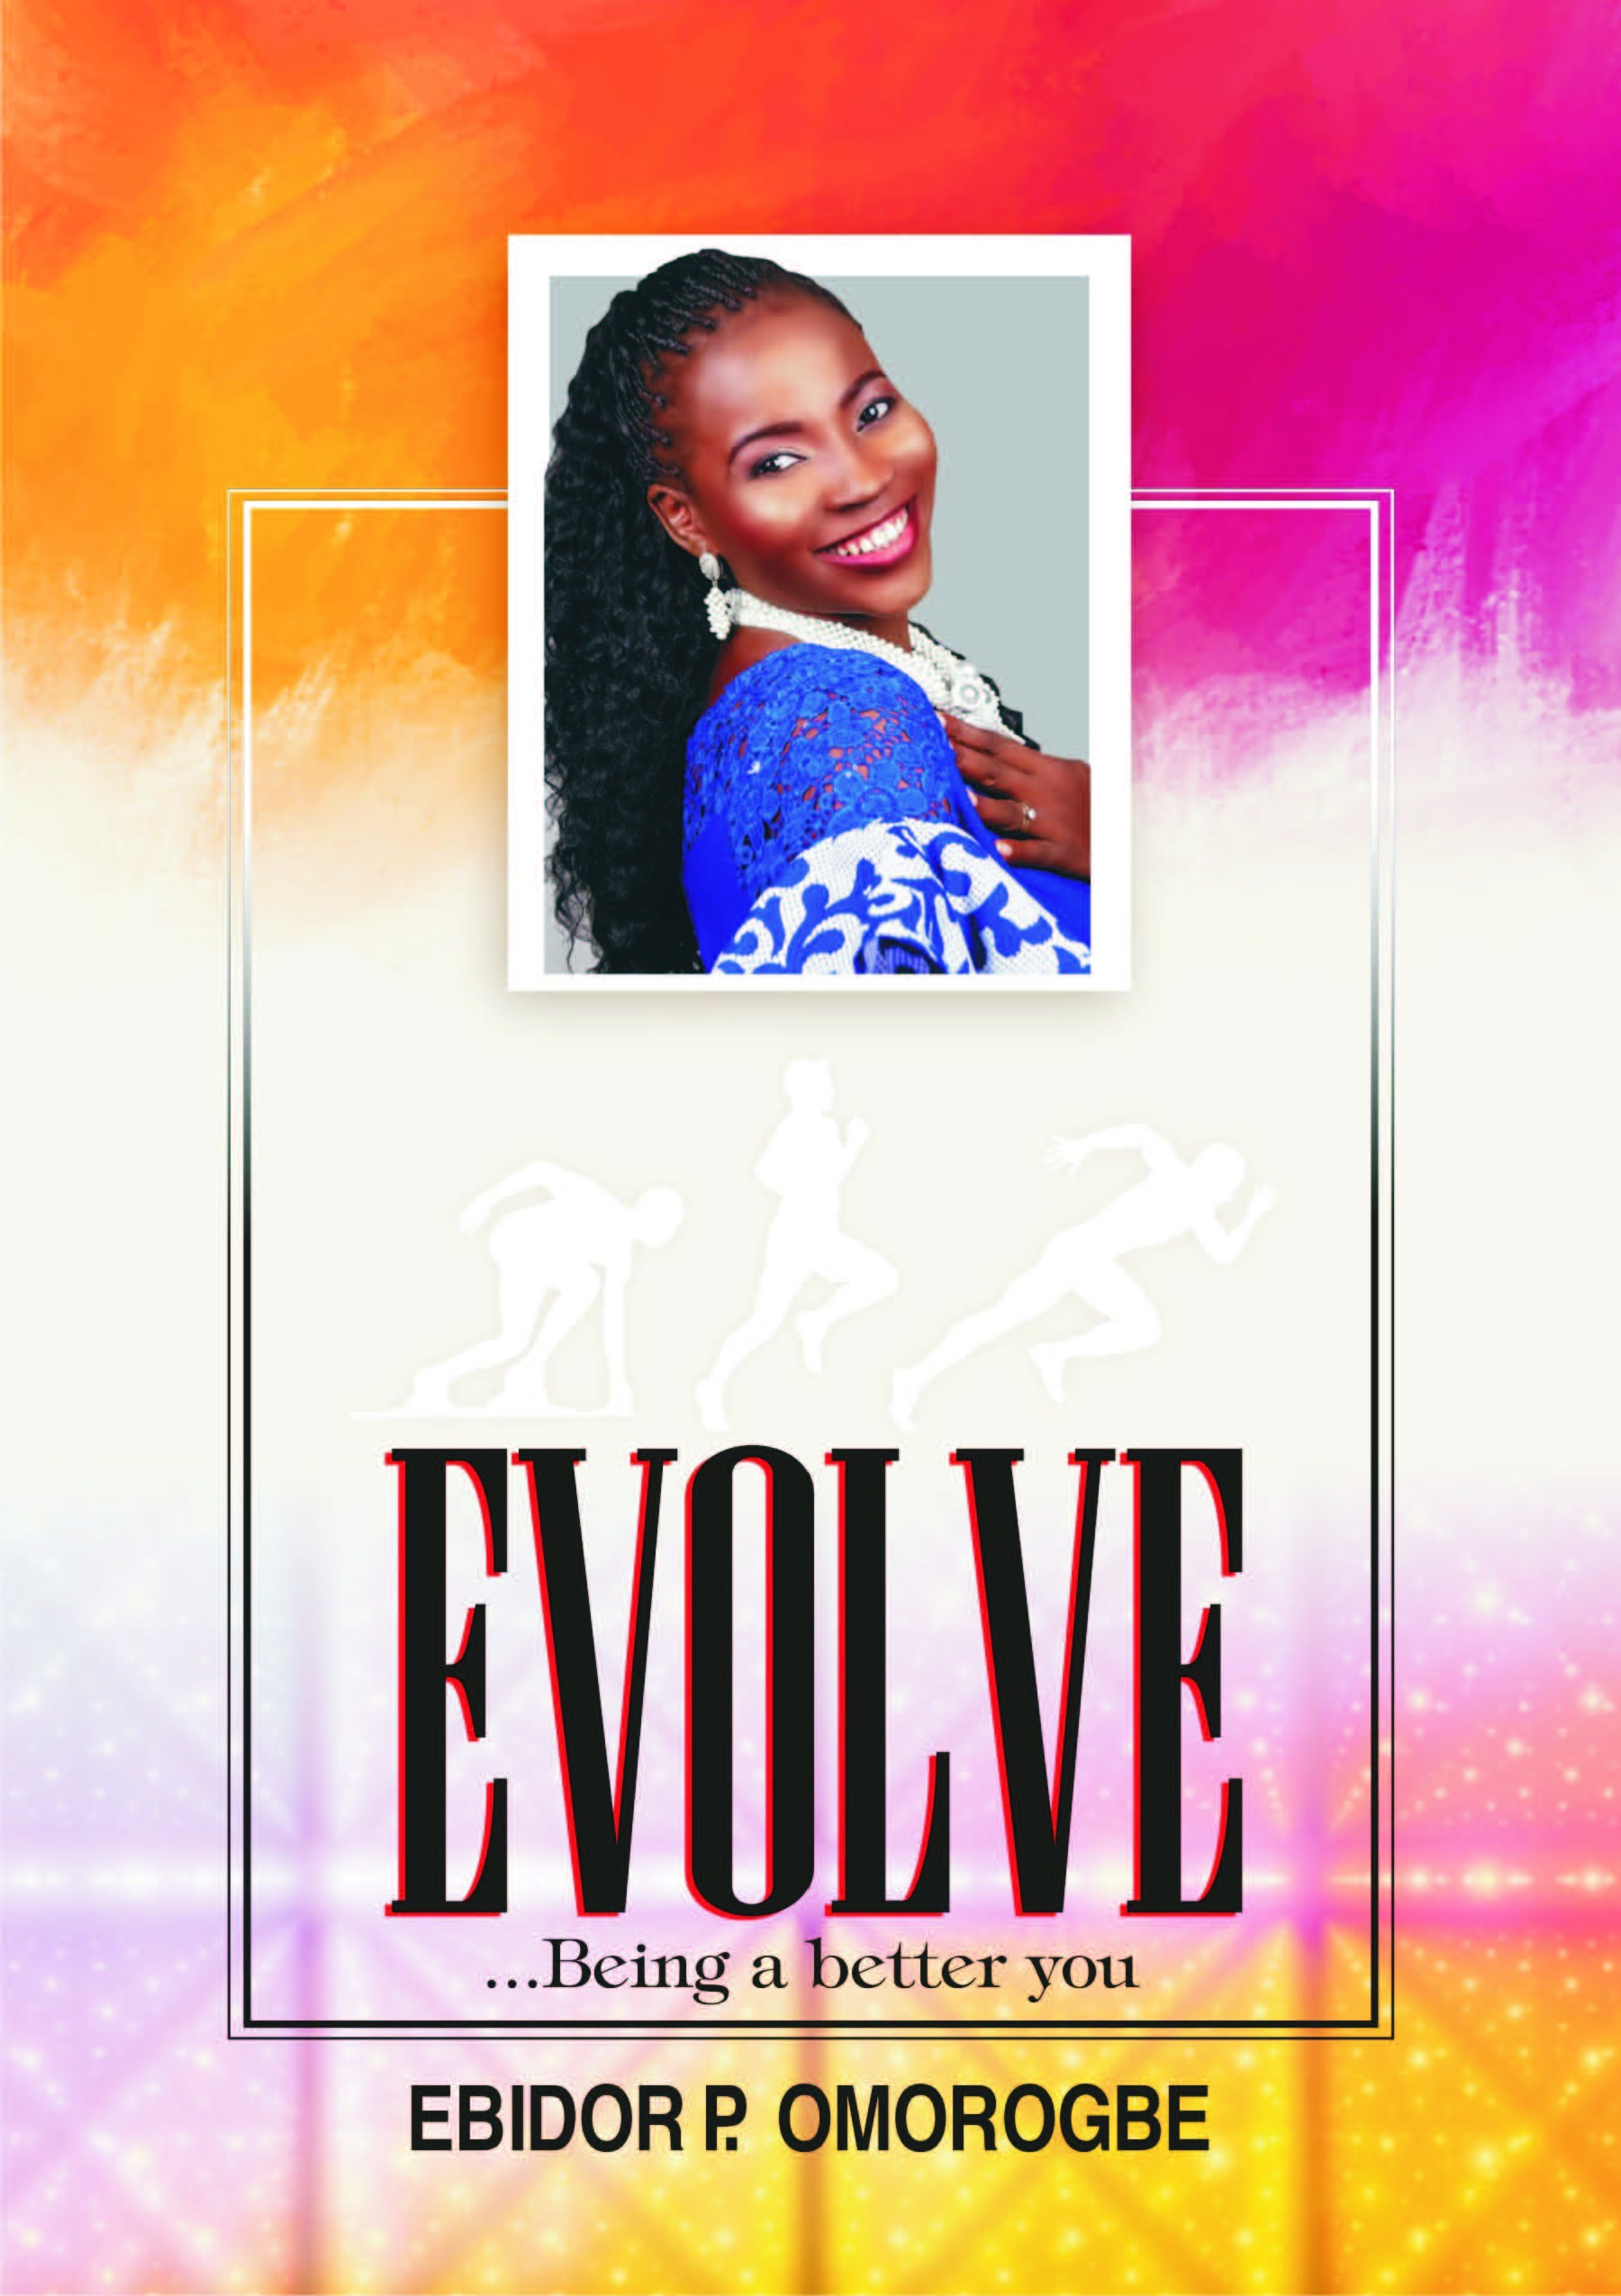 EVOLVE...Being a better you